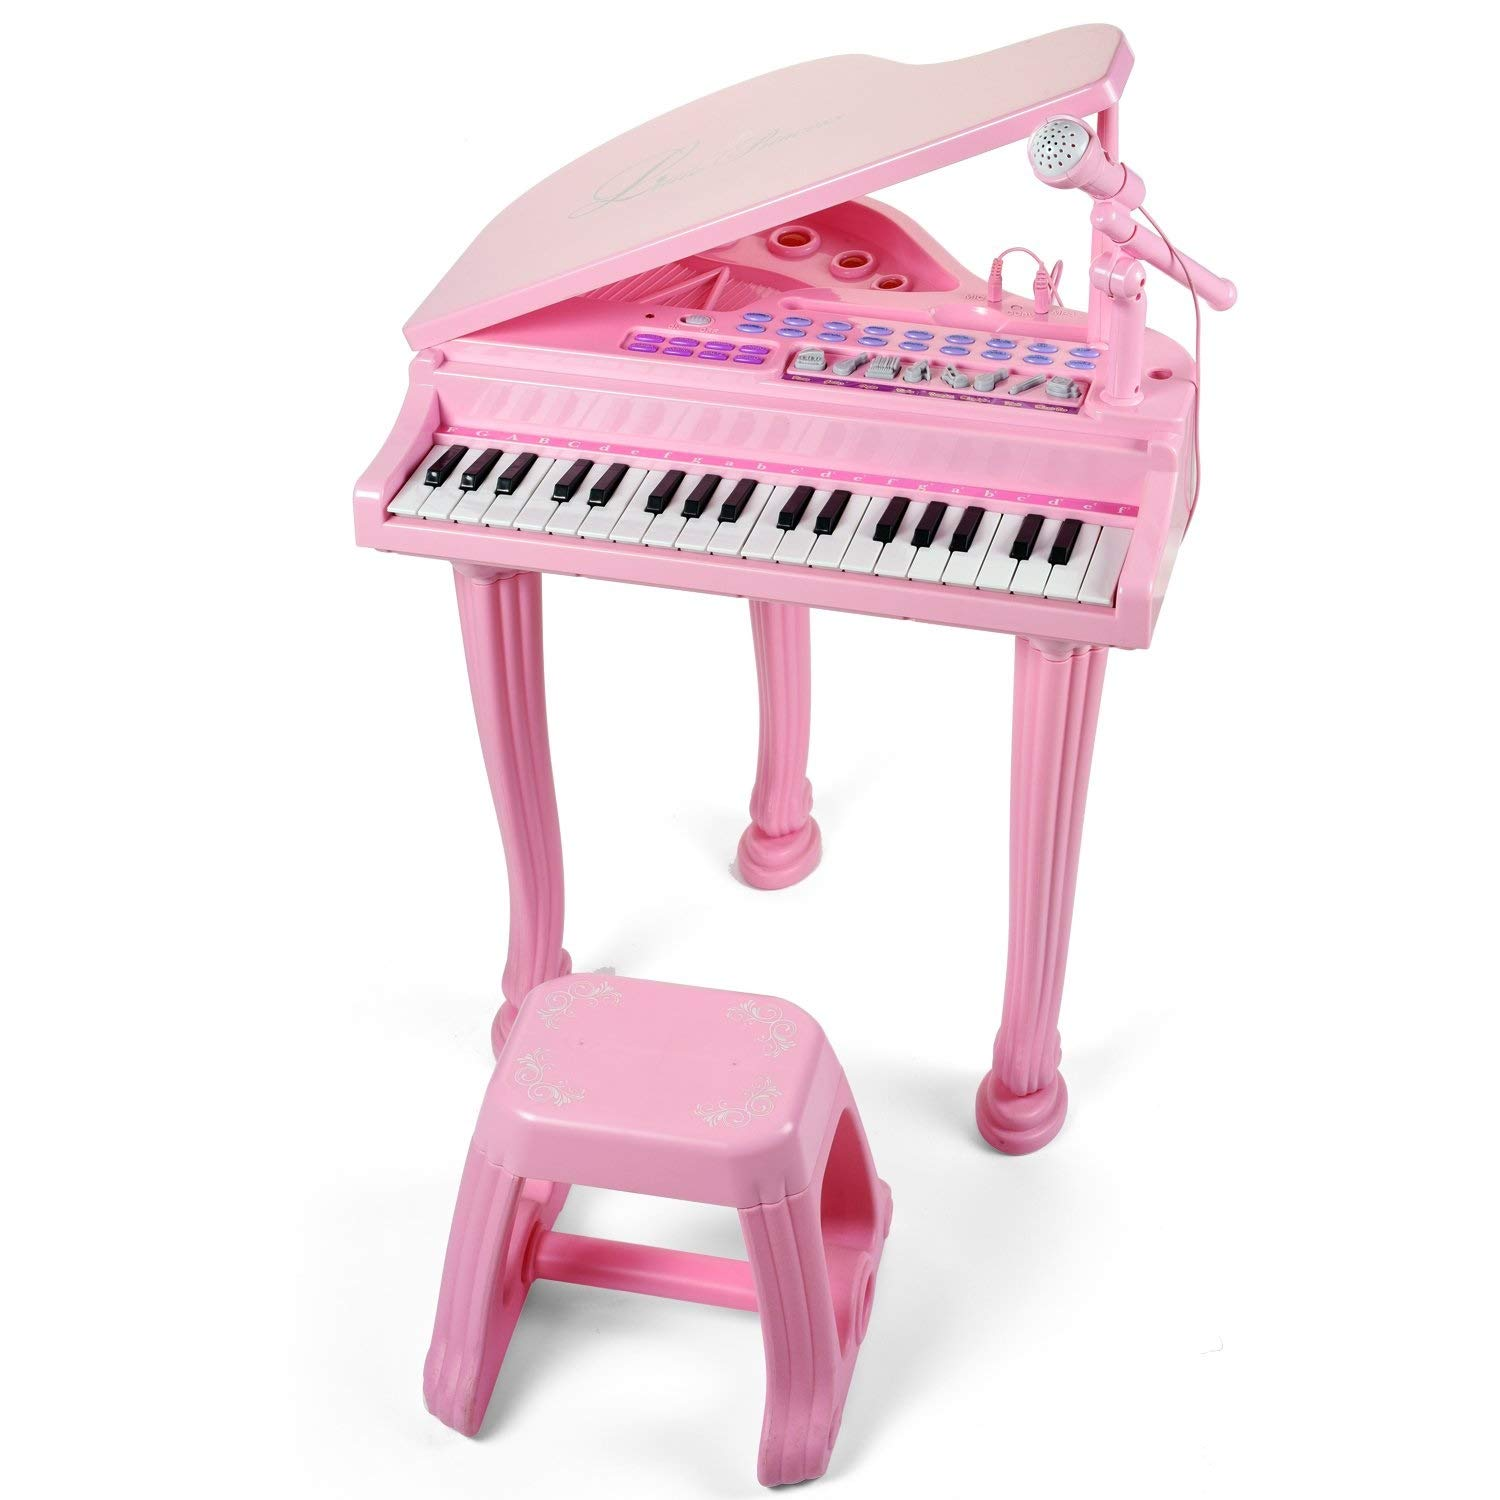 XNYY BABY 37 Key Pink Princess Grand Piano Children's Small Piano Toy Children's Toy Keyboard Girl Baby, Small Piano Beginner Grand Piano 1-2 Years Old Entertainment Toys Early Childhood Piano